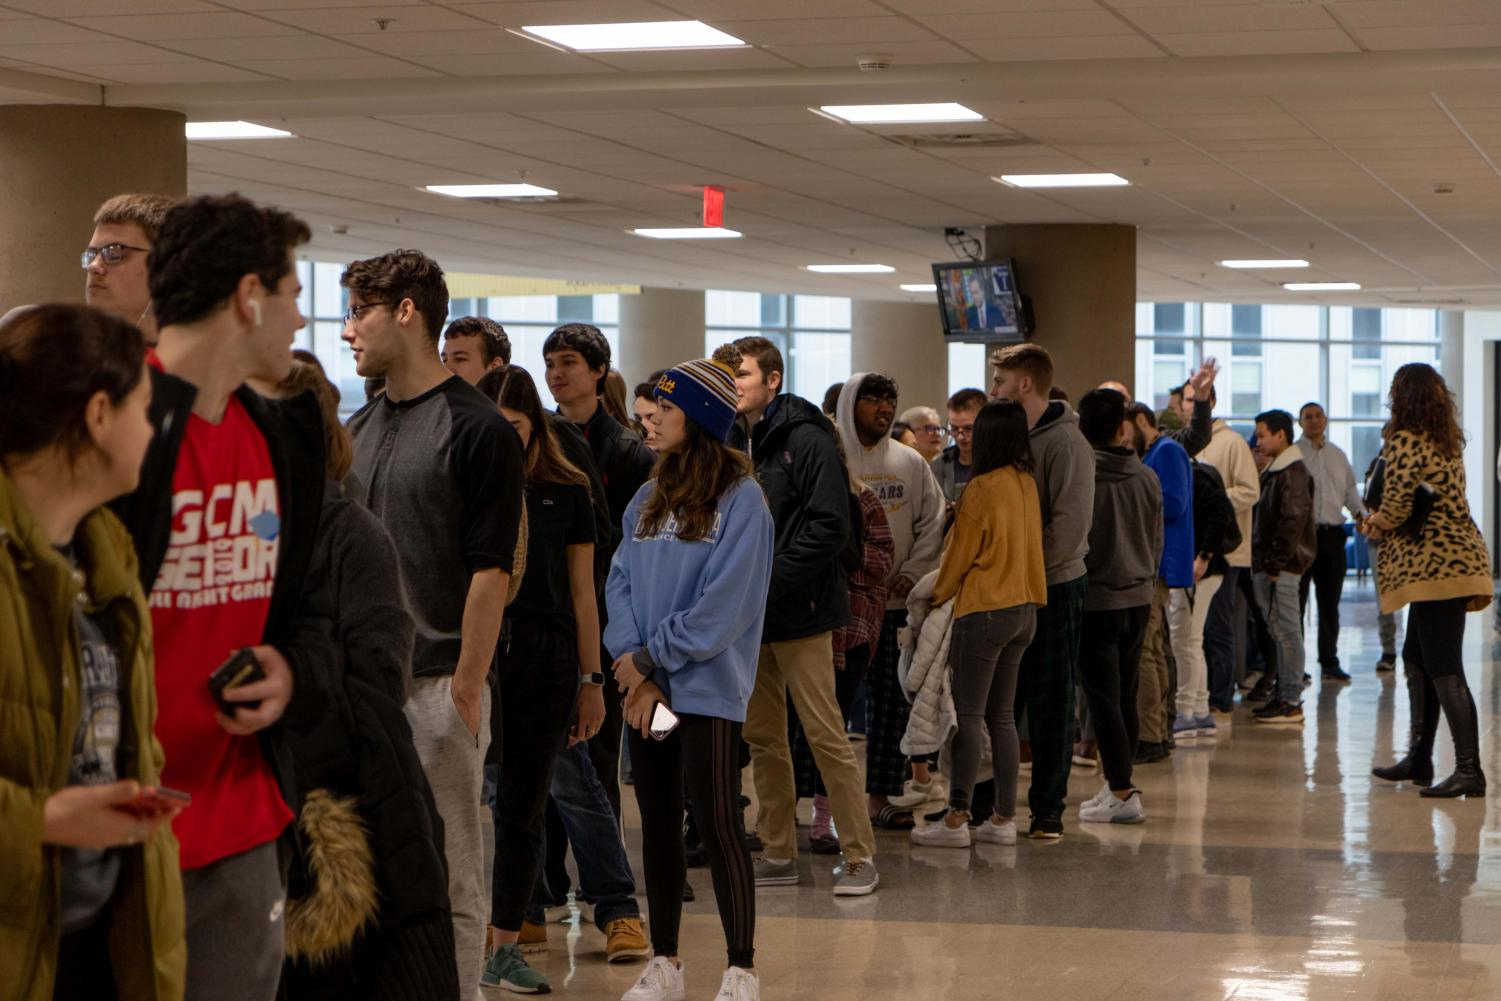 Students await the opening of the newly reopened Chick-fil-A.